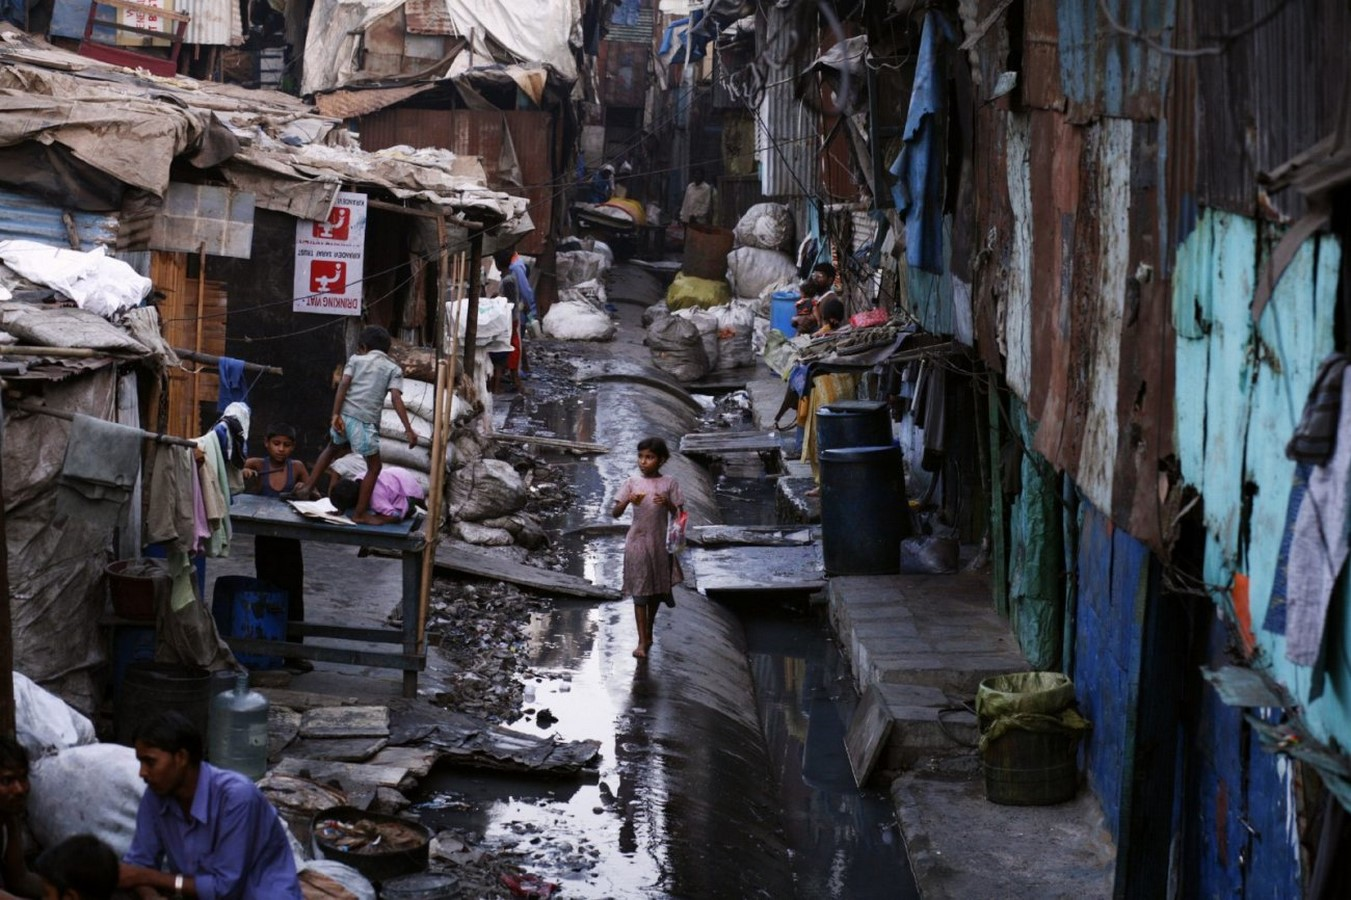 Contrast in the cityscape of Mumbai - Sheet7